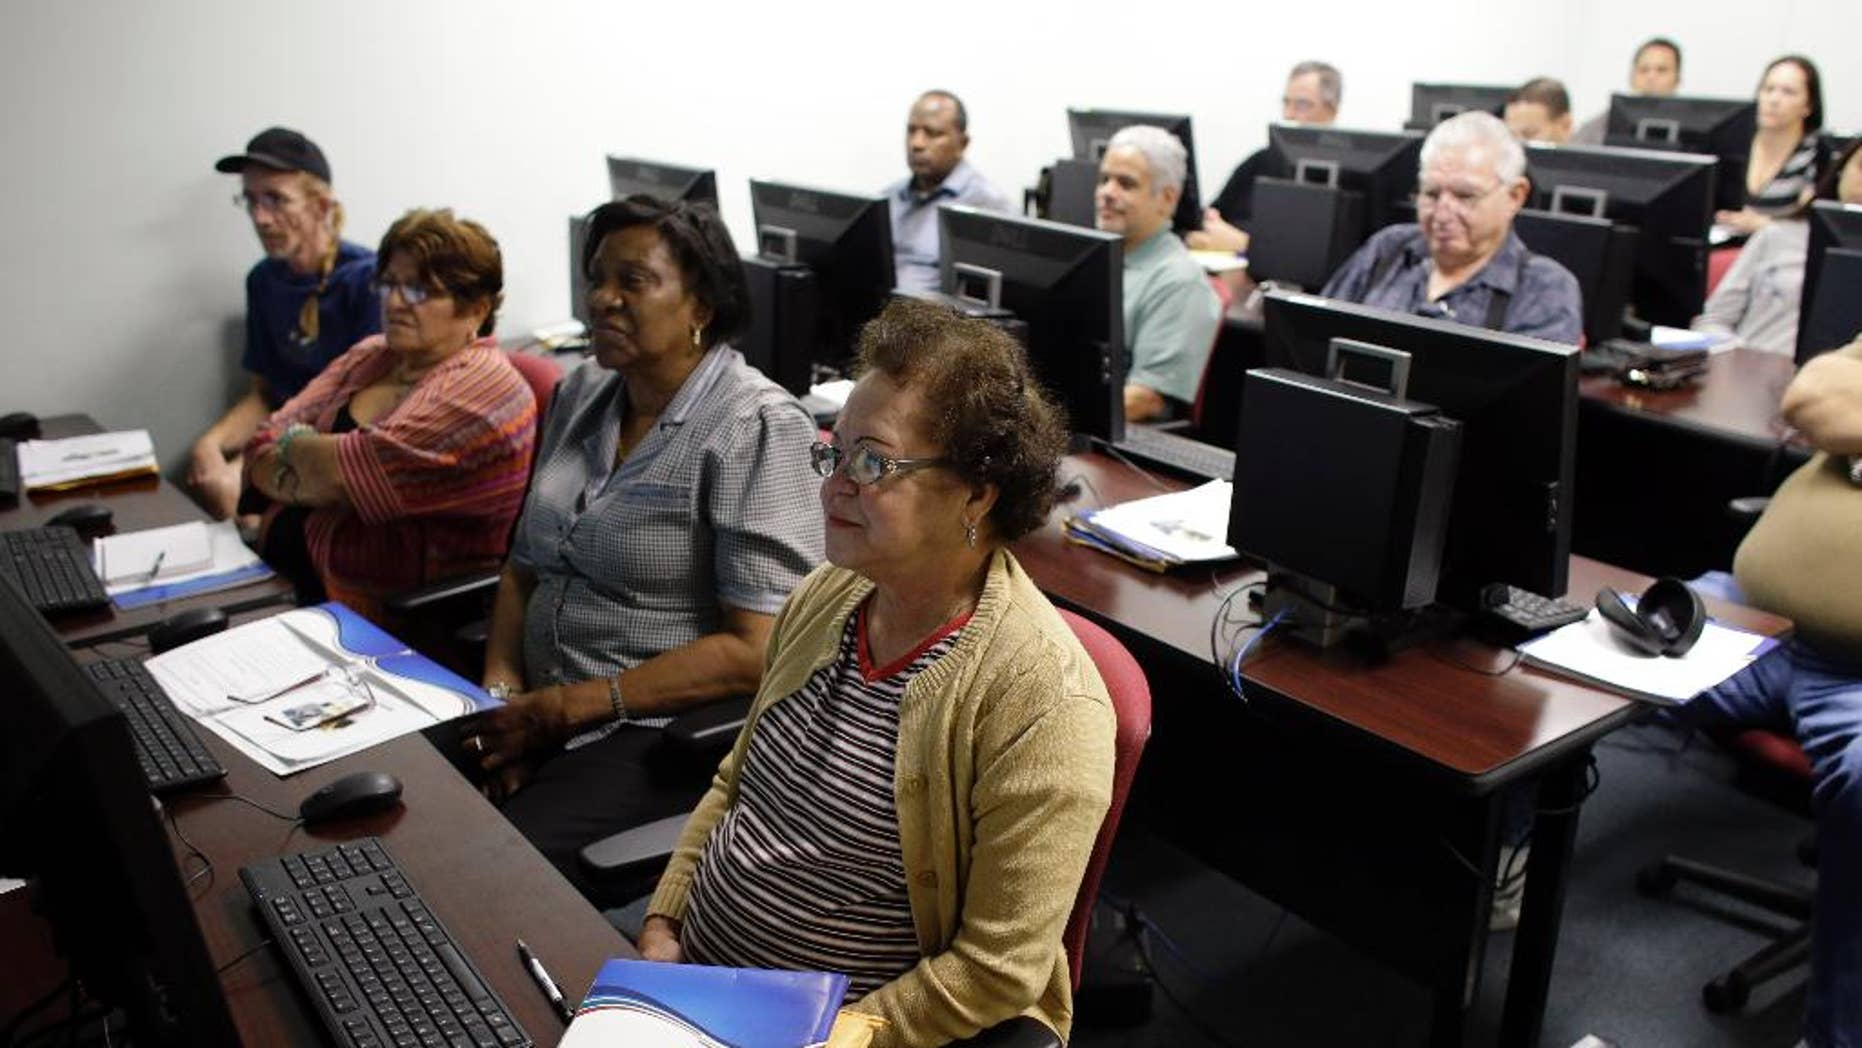 In this Feb. 6 2014 photo, Margarita Sanchez, 72, of Hollywood, Fla., front, listens during a job search workshop at WorkForce One in Davie, Fla. The government reports on state unemployment rates for January on Monday, March 17, 2014. (AP Photo/Lynne Sladky, File)